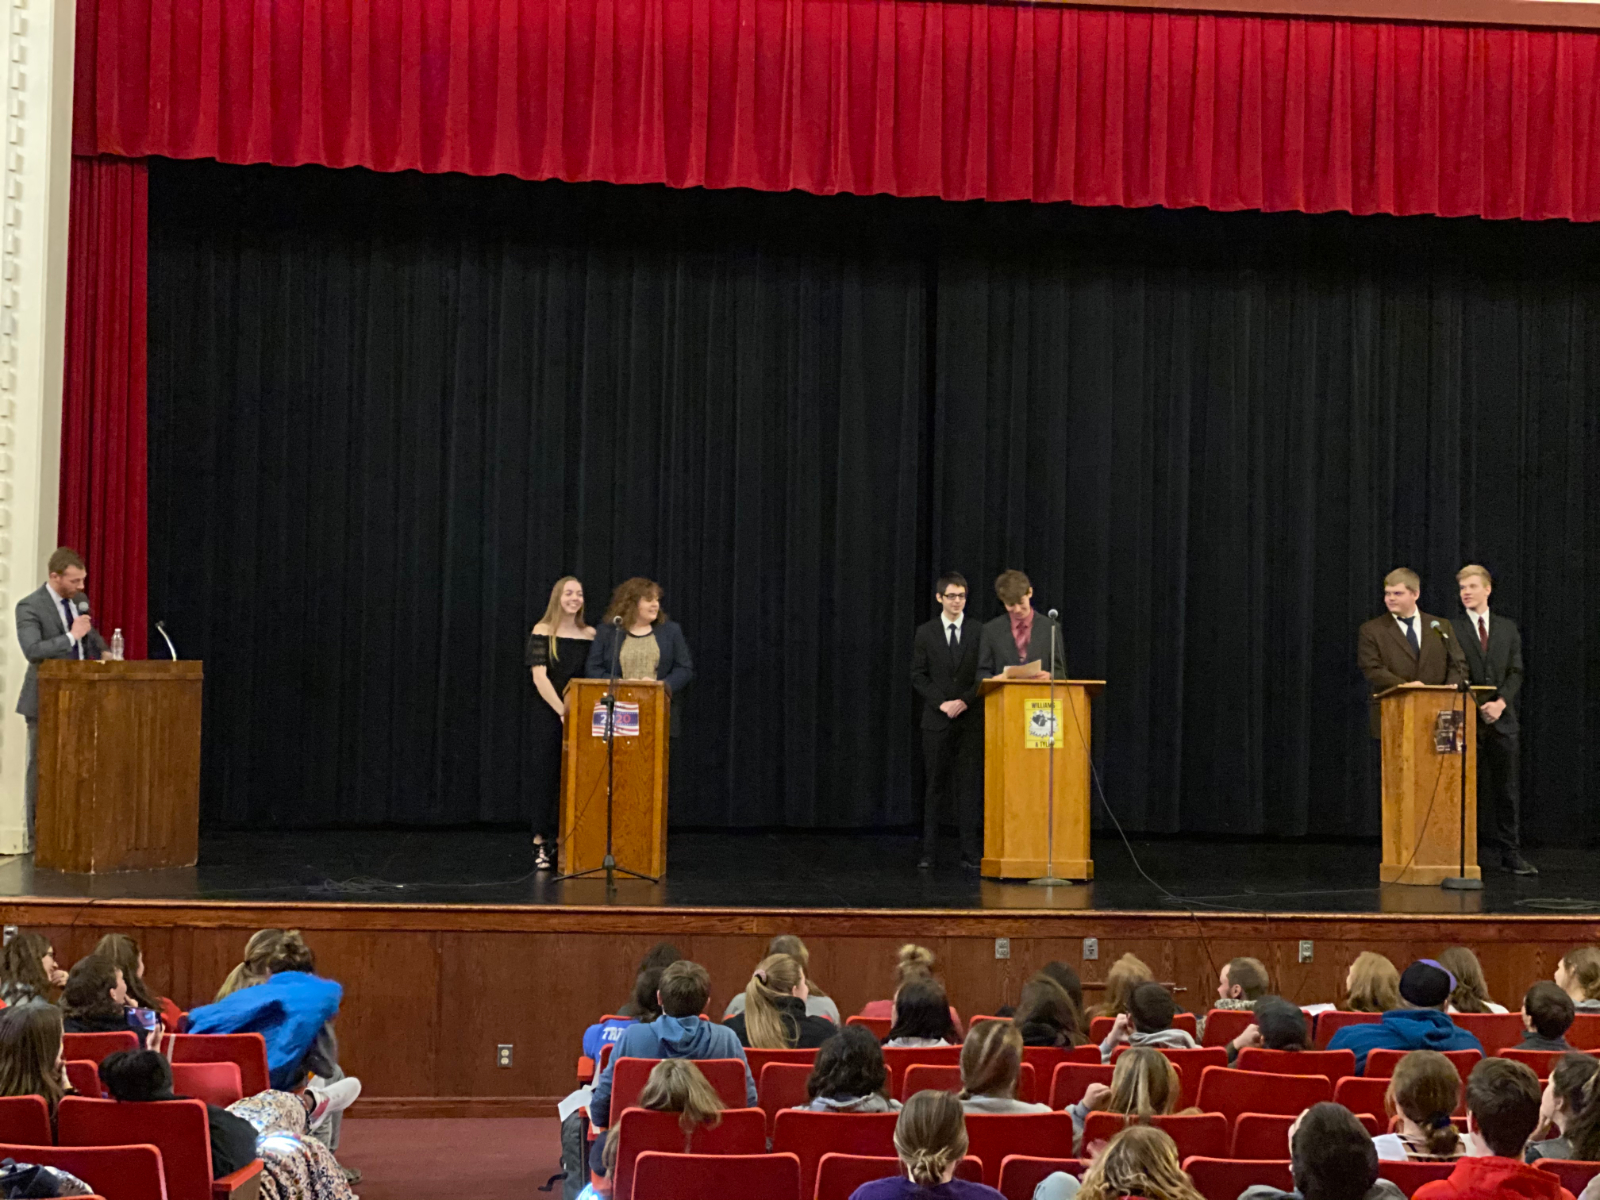 Senior Government Class Conducts 2020 Mock Election